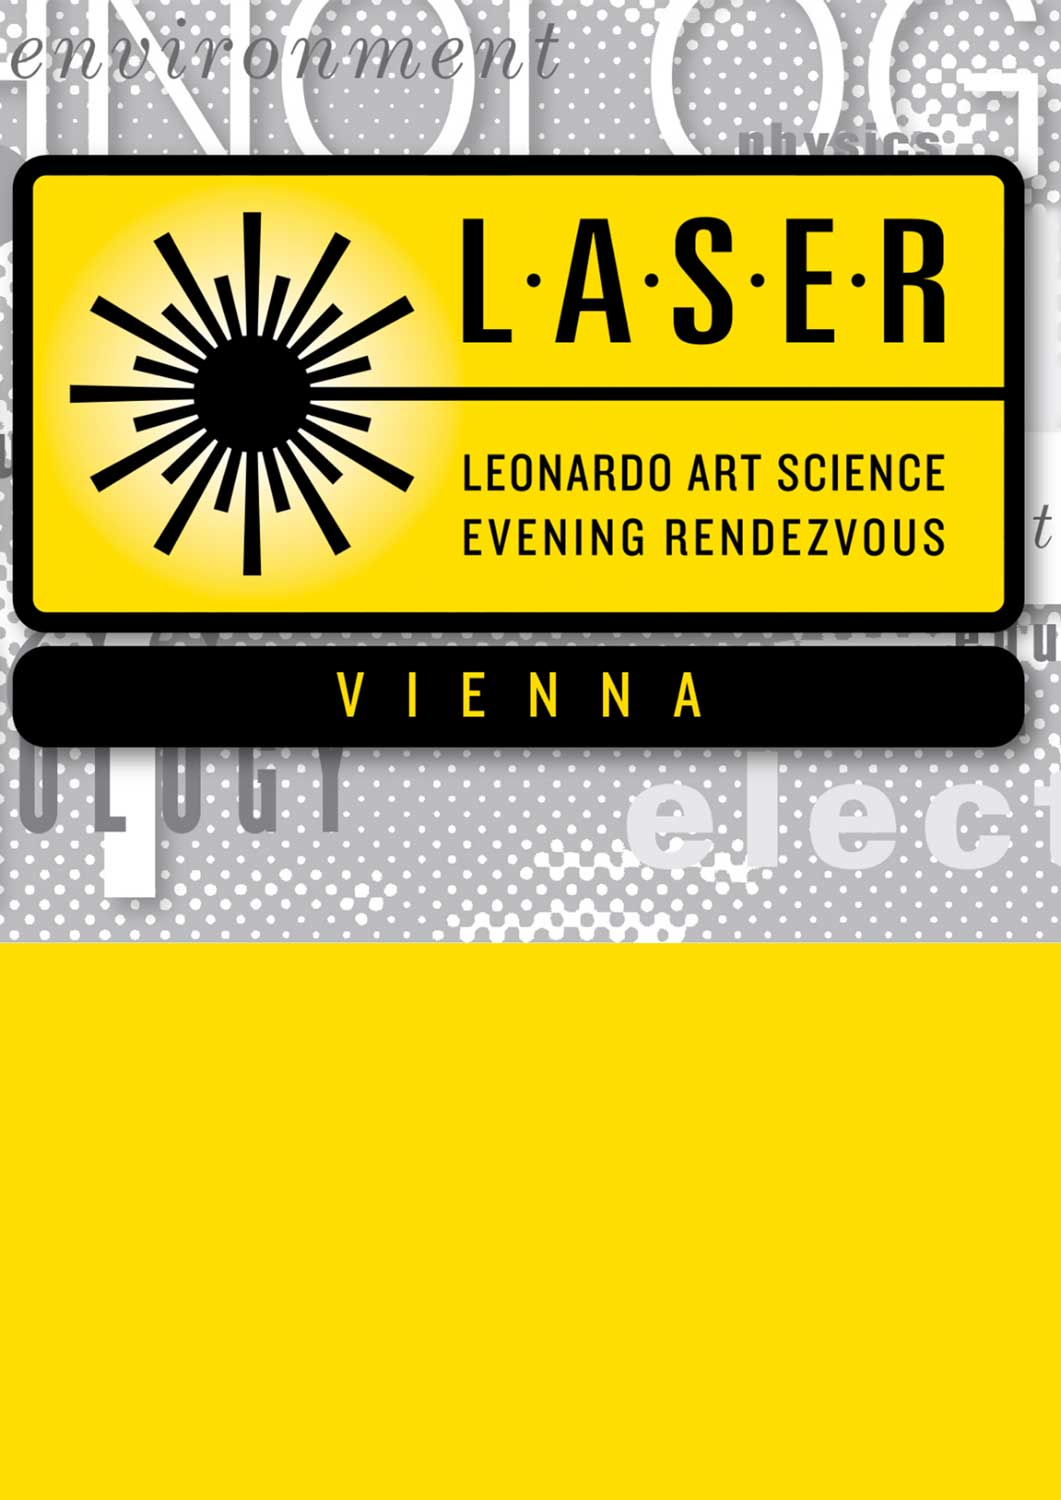 LASER Talks at Vienna